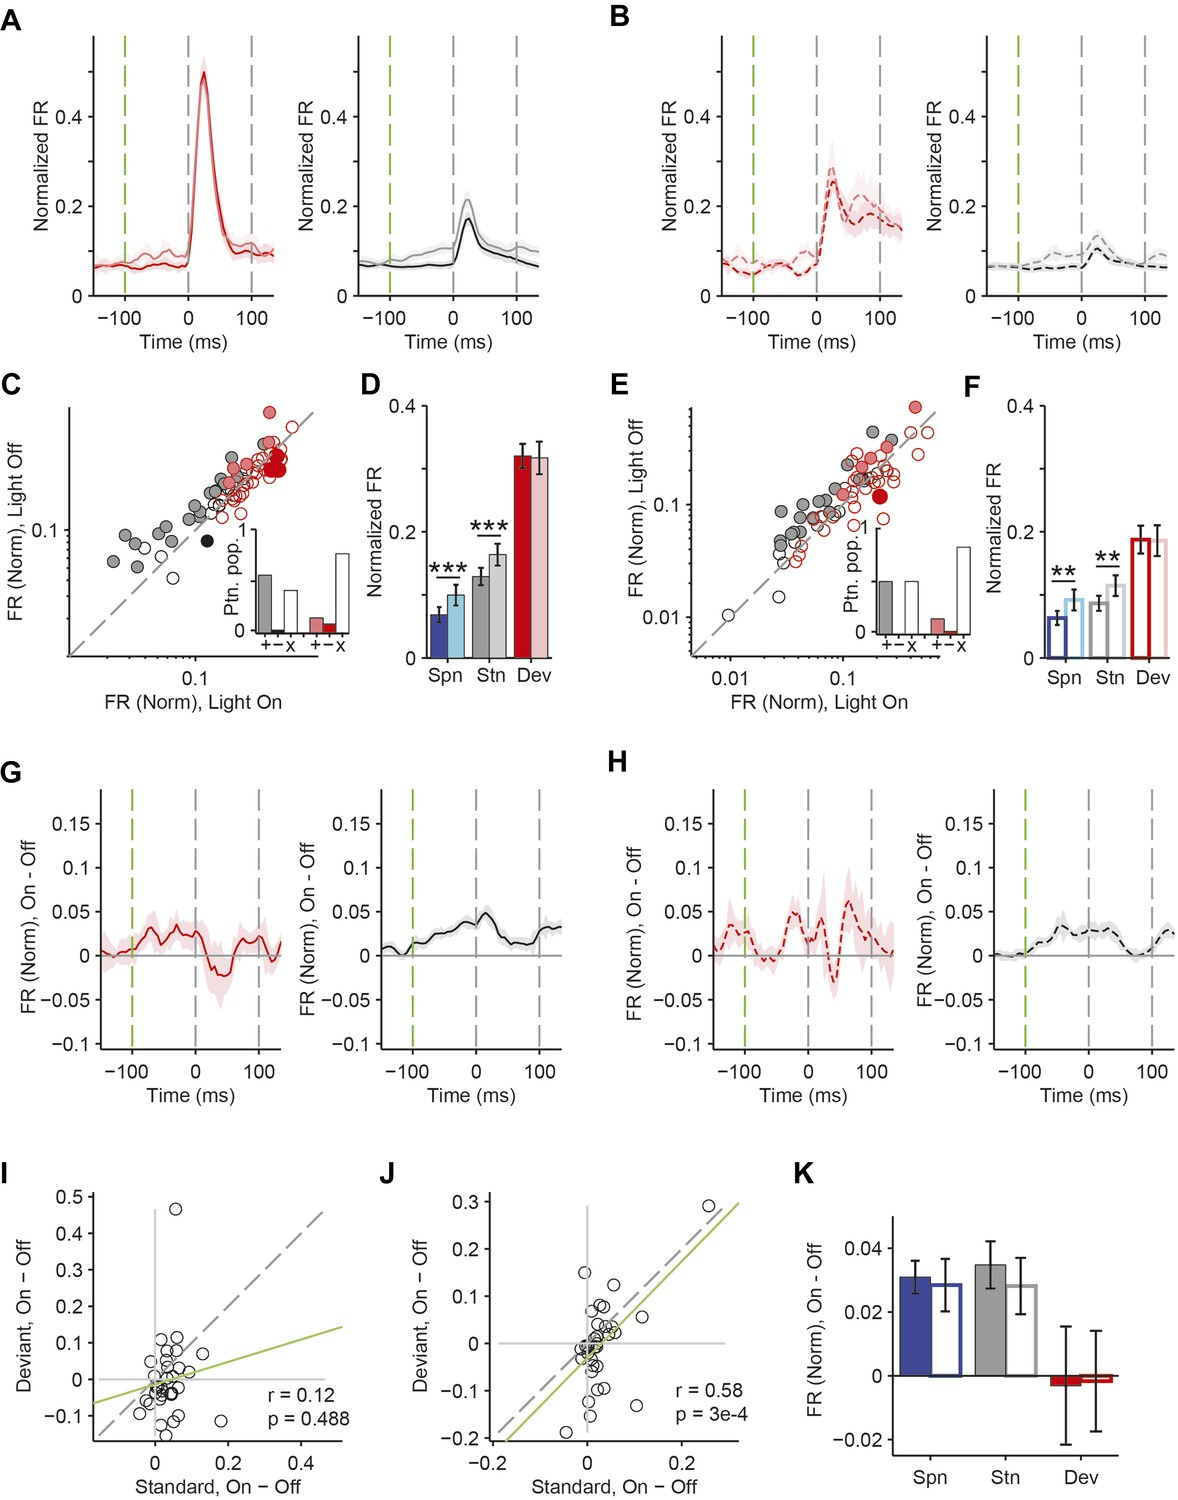 Complementary Control Of Sensory Adaptation By Two Types Cortical Circuit 363 36 Hour Watchdog Timer Circuits Designed David A Effects Som Suppression Are Identical For Tones That Evoke Strong Or Weak Responses In Putative Excitatory Neurons